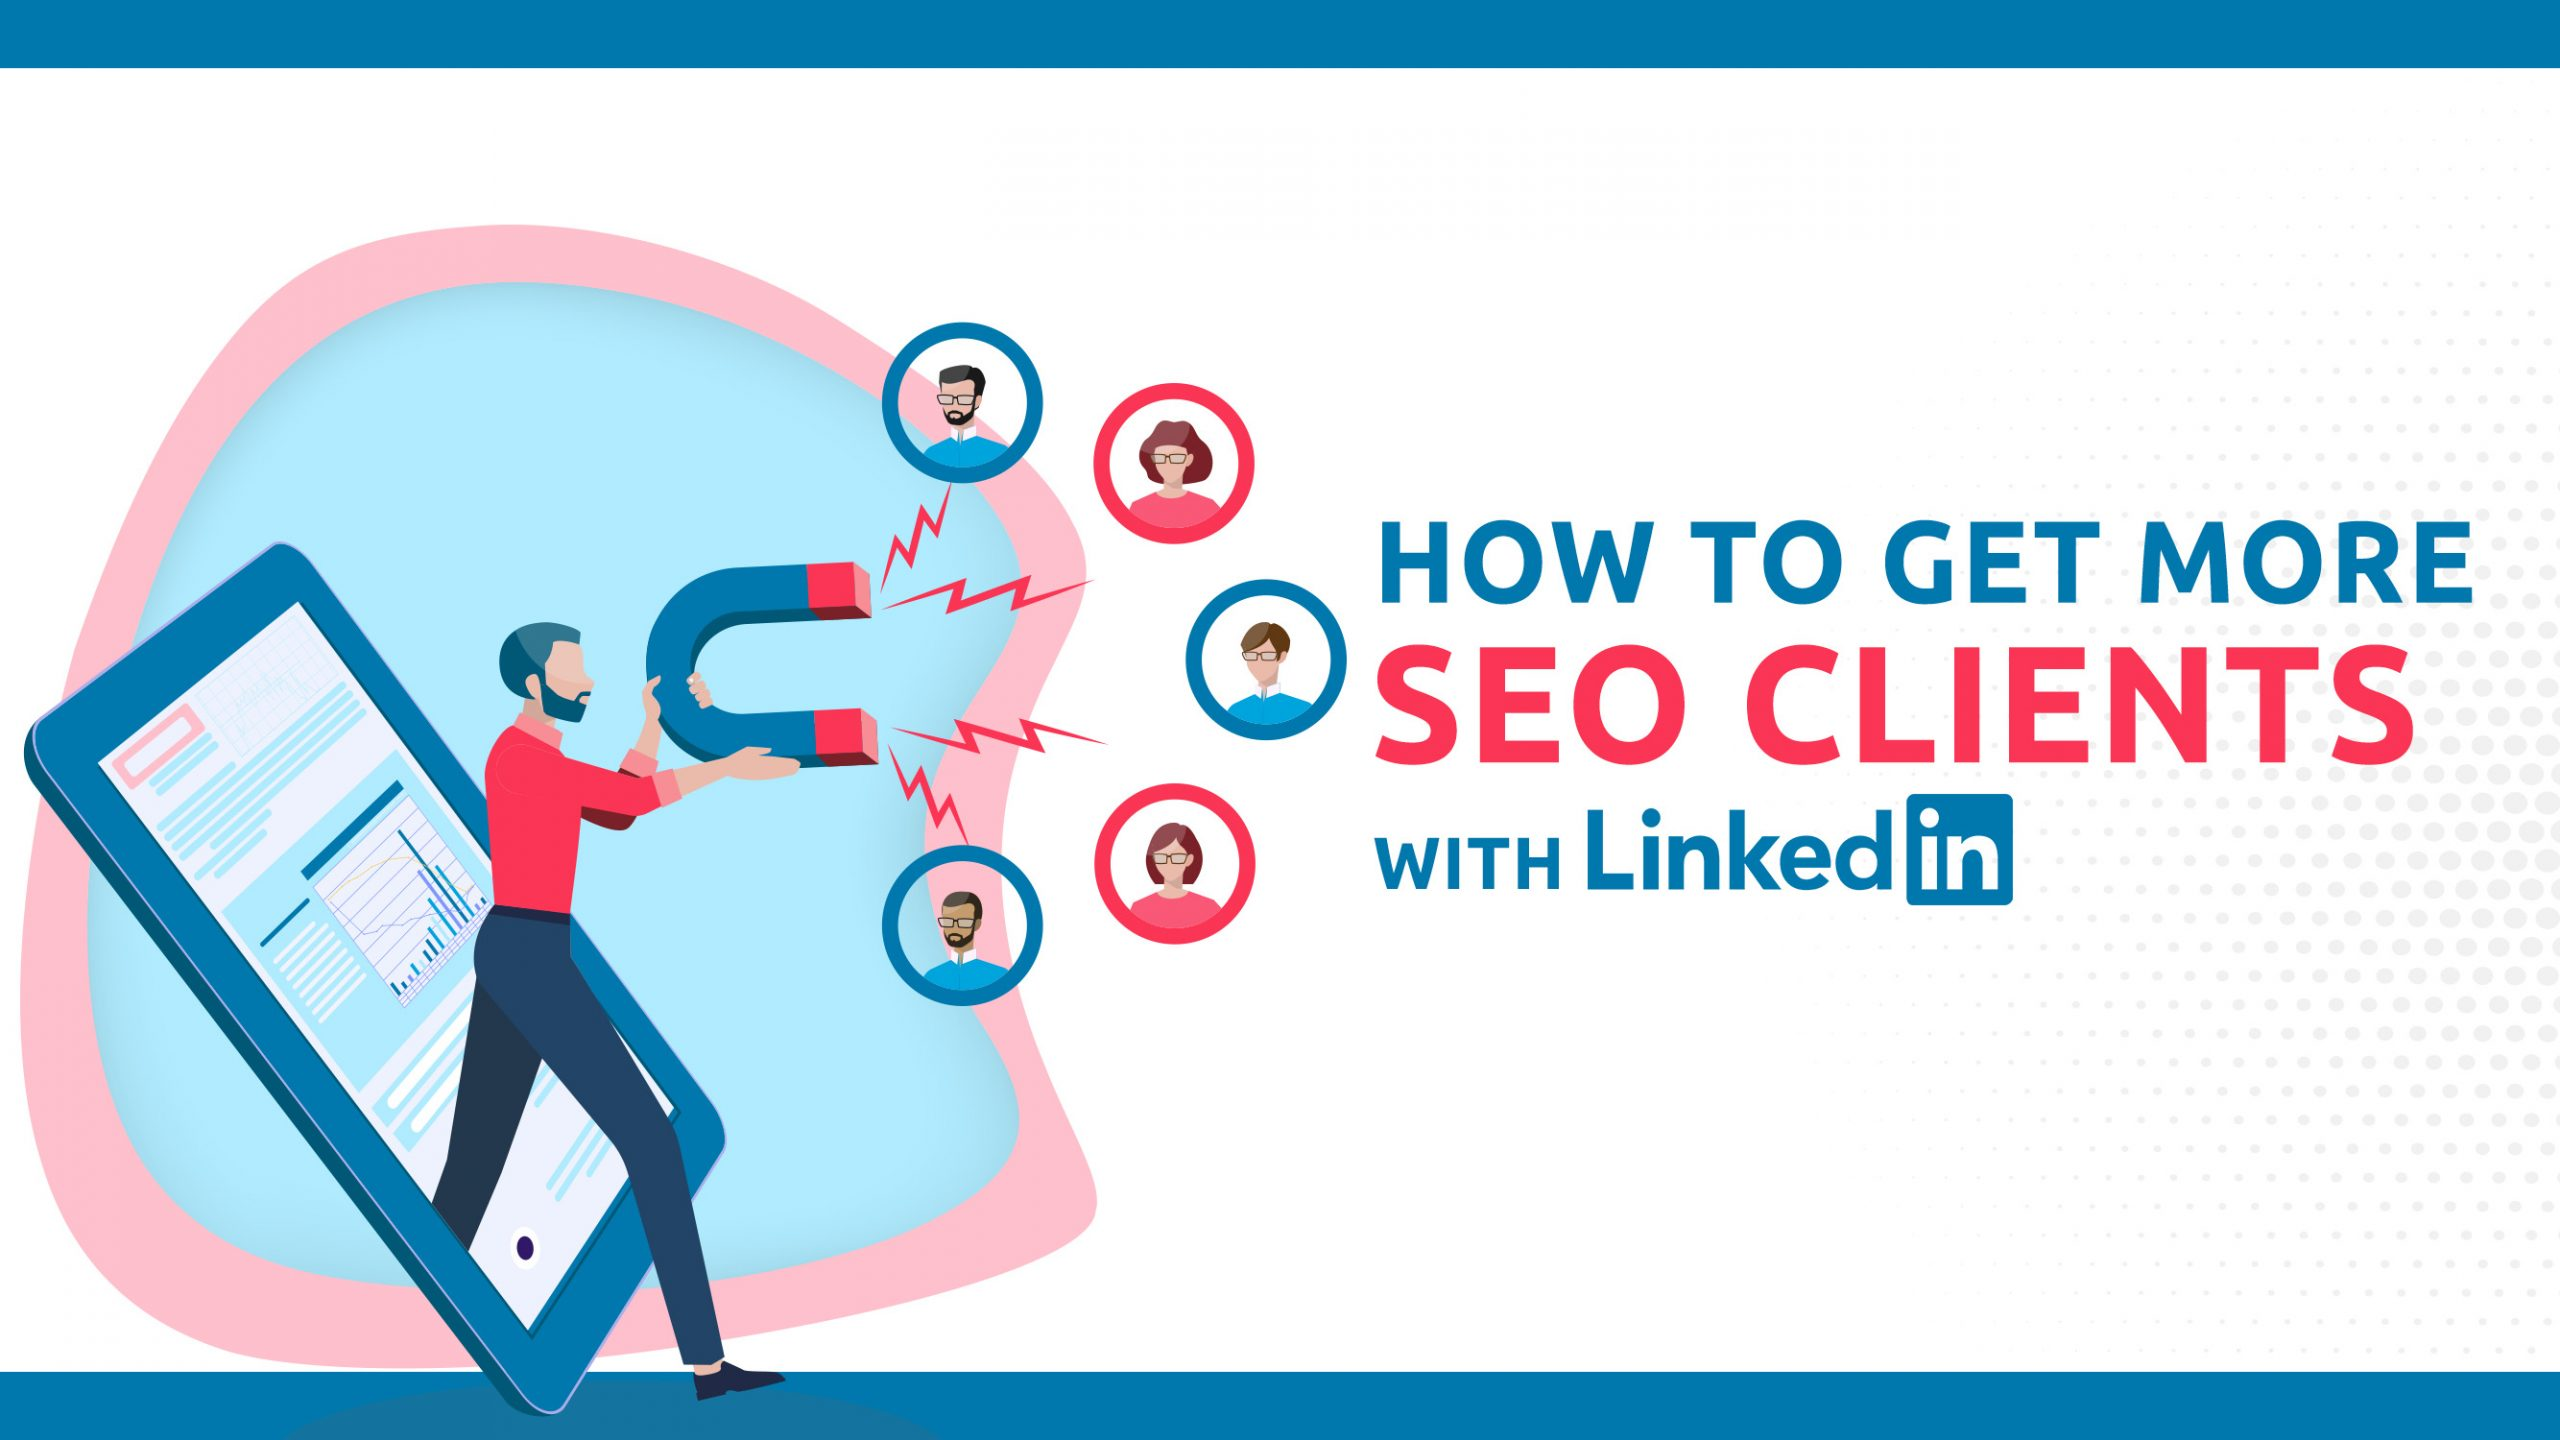 How To Get More SEO Clients With LinkedIn